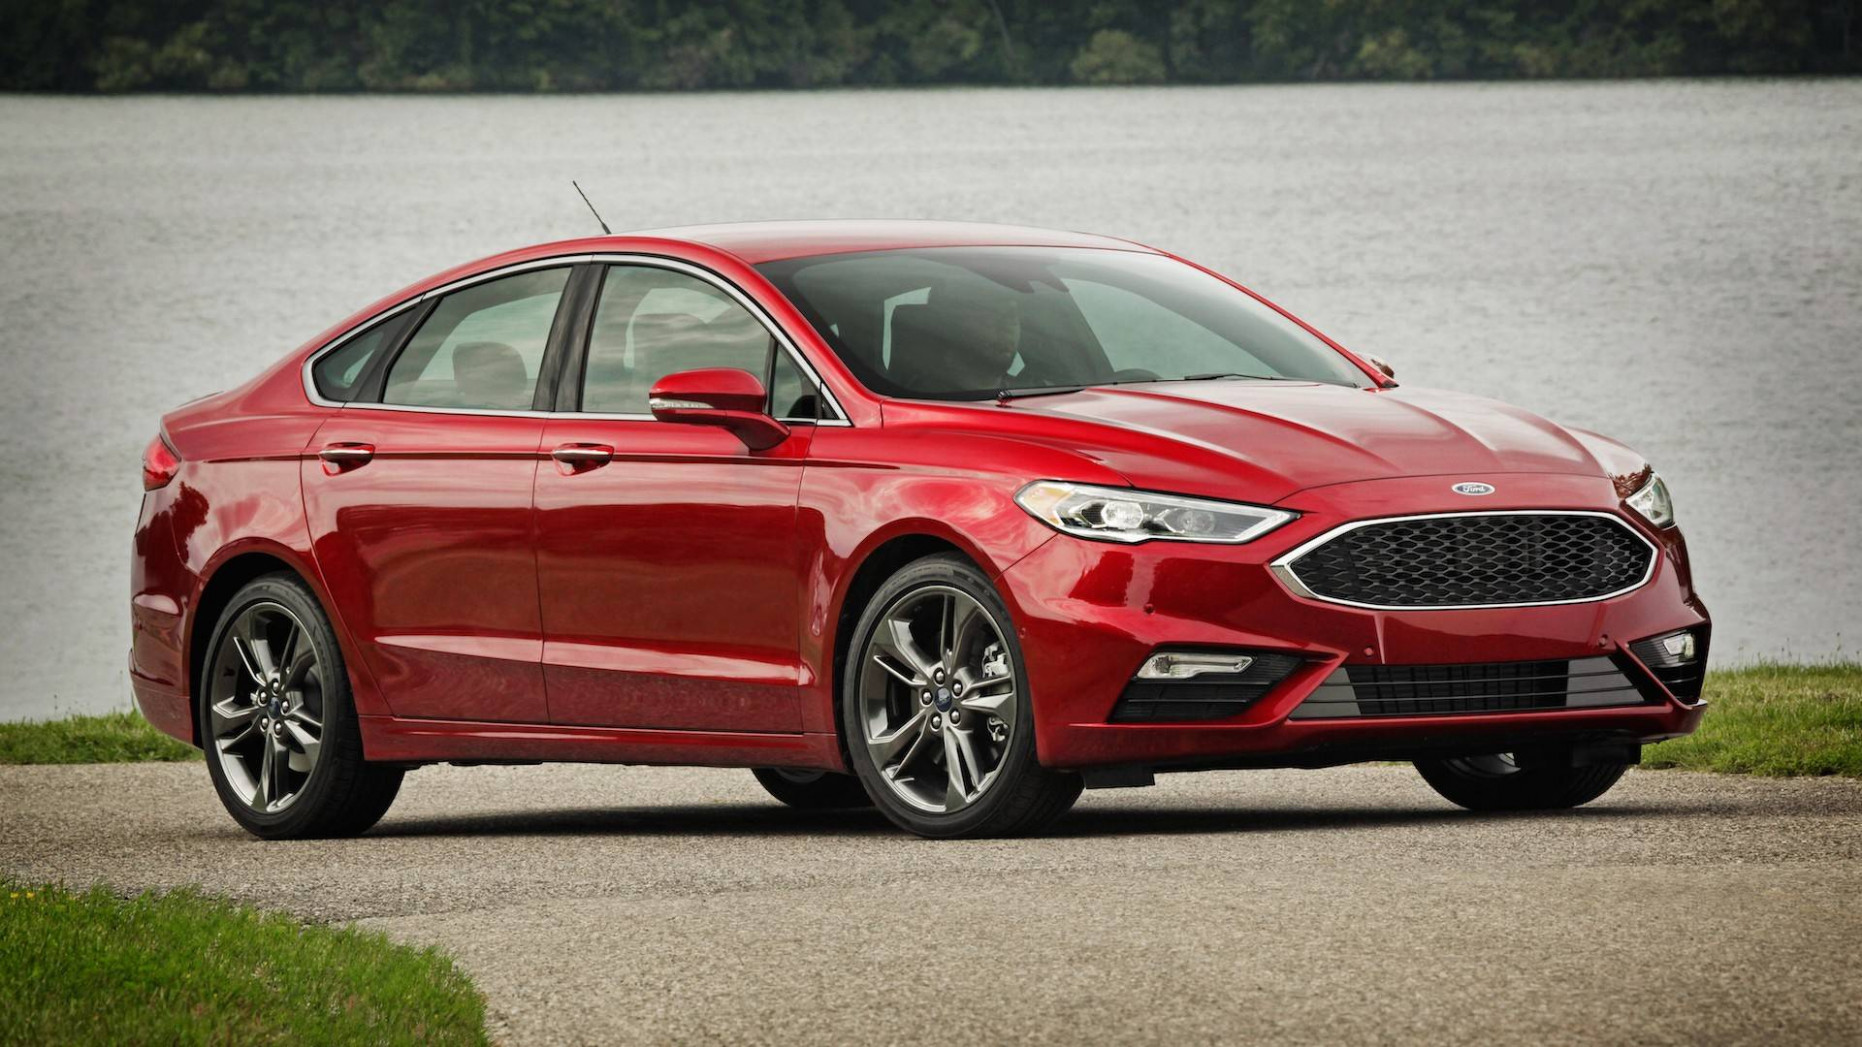 Ford Reportedly Cancels Fusion Redesign Scheduled For 6 - ford fusion 2020